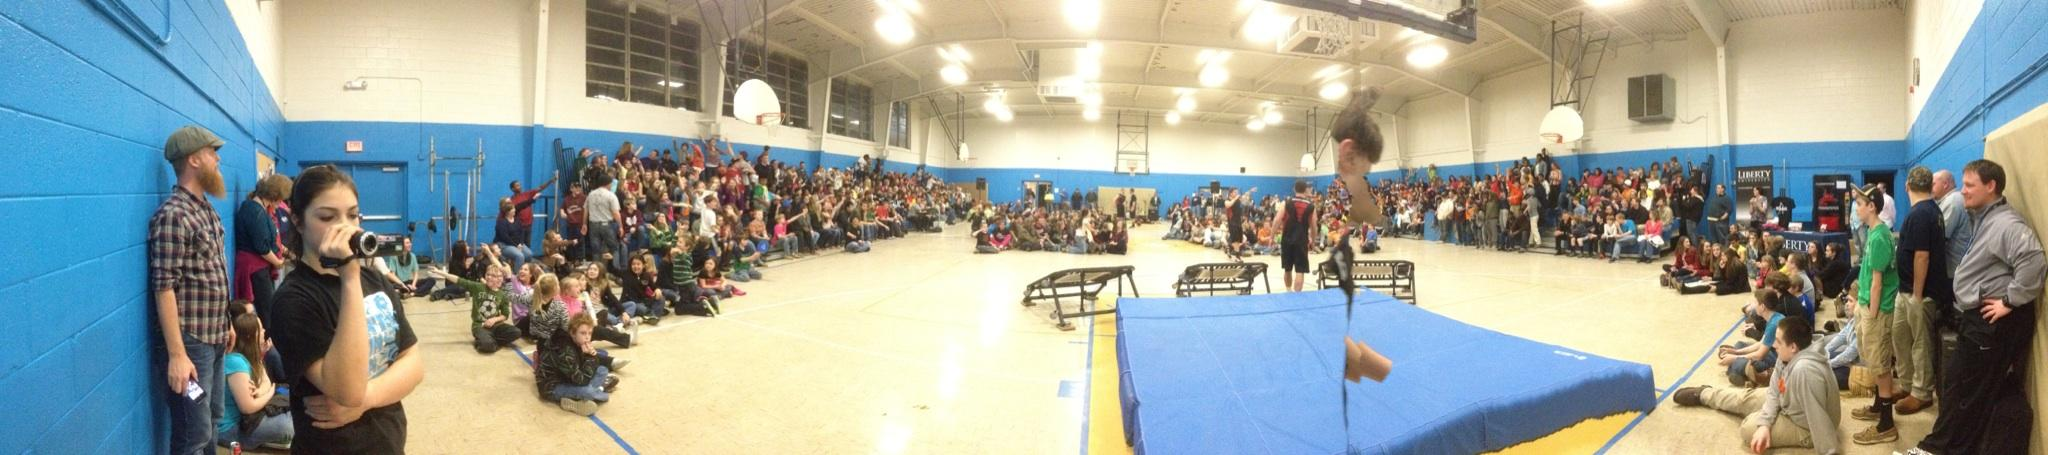 winter slam panorama